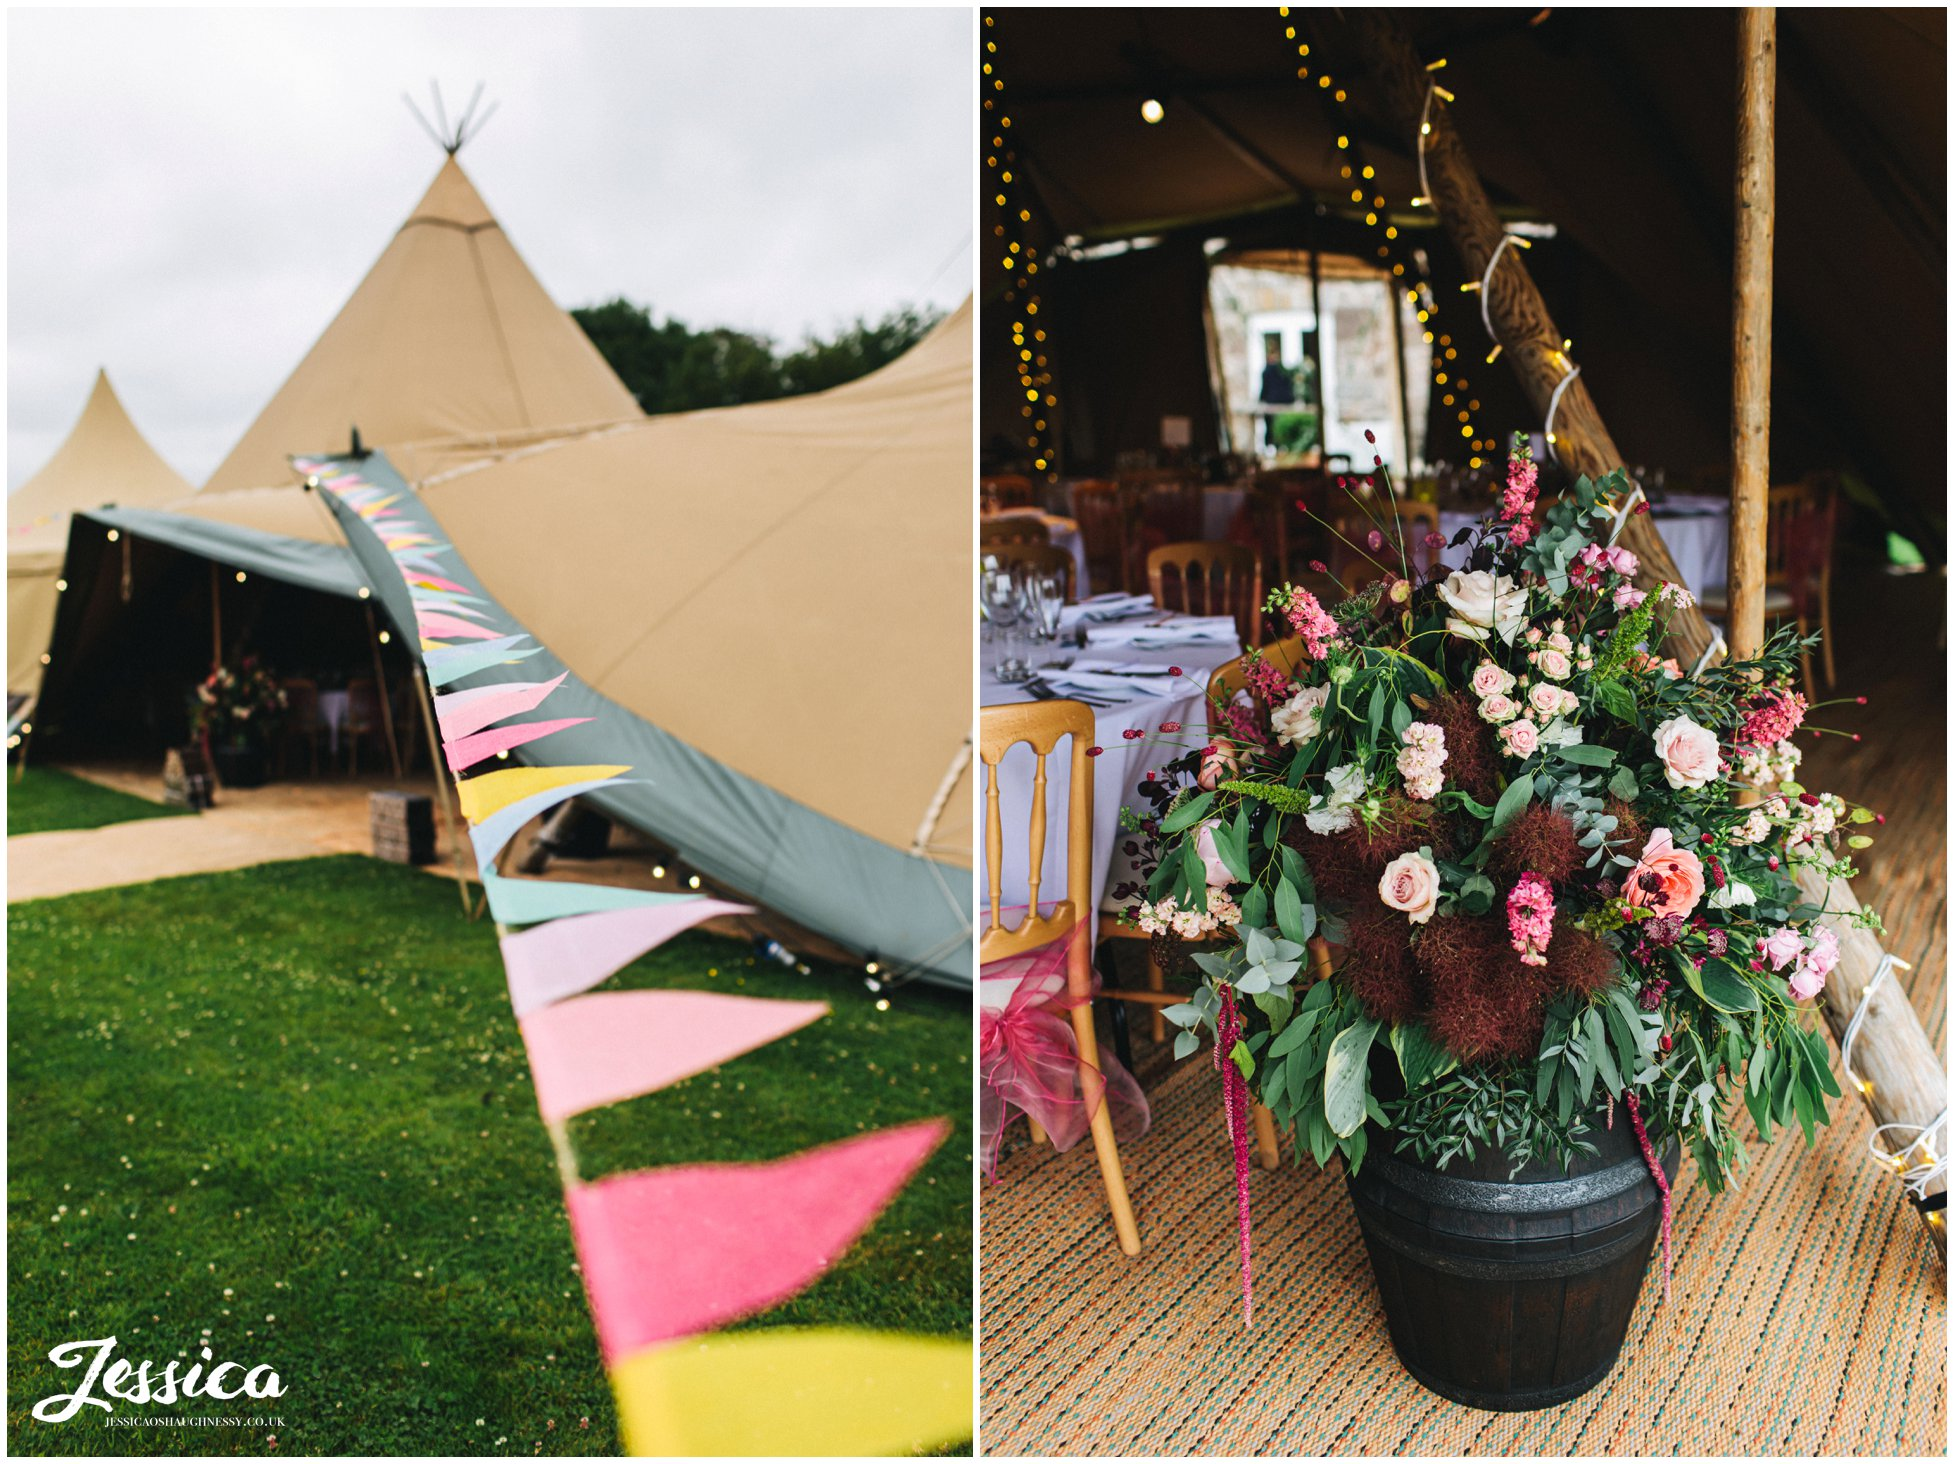 bunting and flowers decorate the wedding tipi in north wales